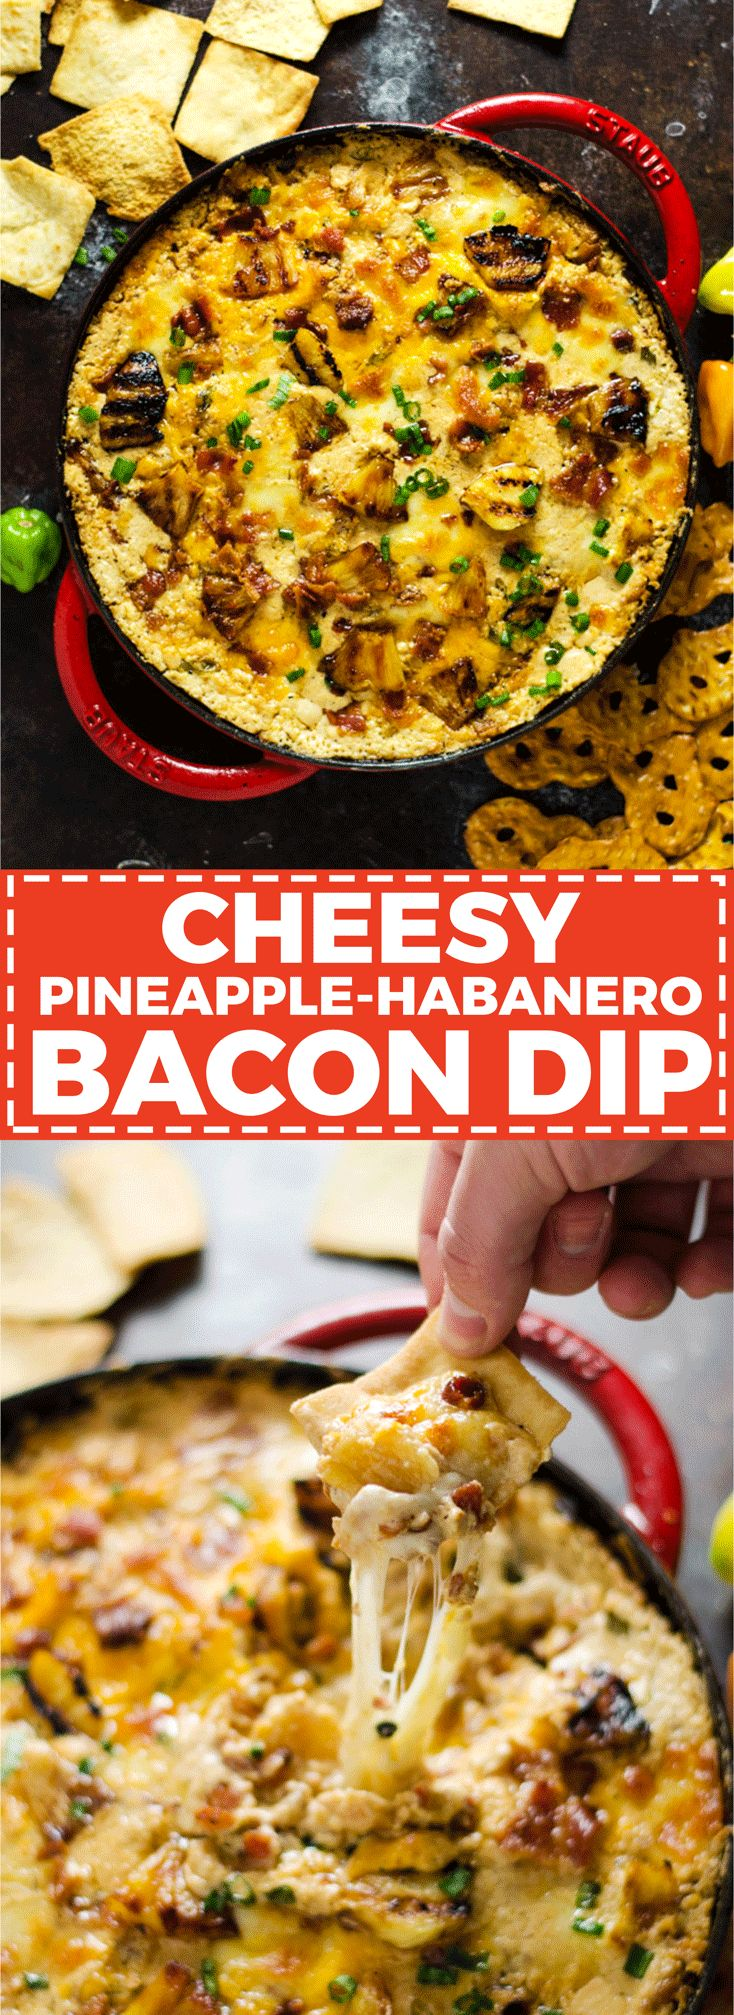 Cheesy Pineapple-Habanero Bacon Dip. This appetizer is sweet, savory, salty, tropical-tasting, and has just a bit of a kick to it. With each warm bite bursting with flavor, it will quickly become your most requested party food. | hostthetoast.com